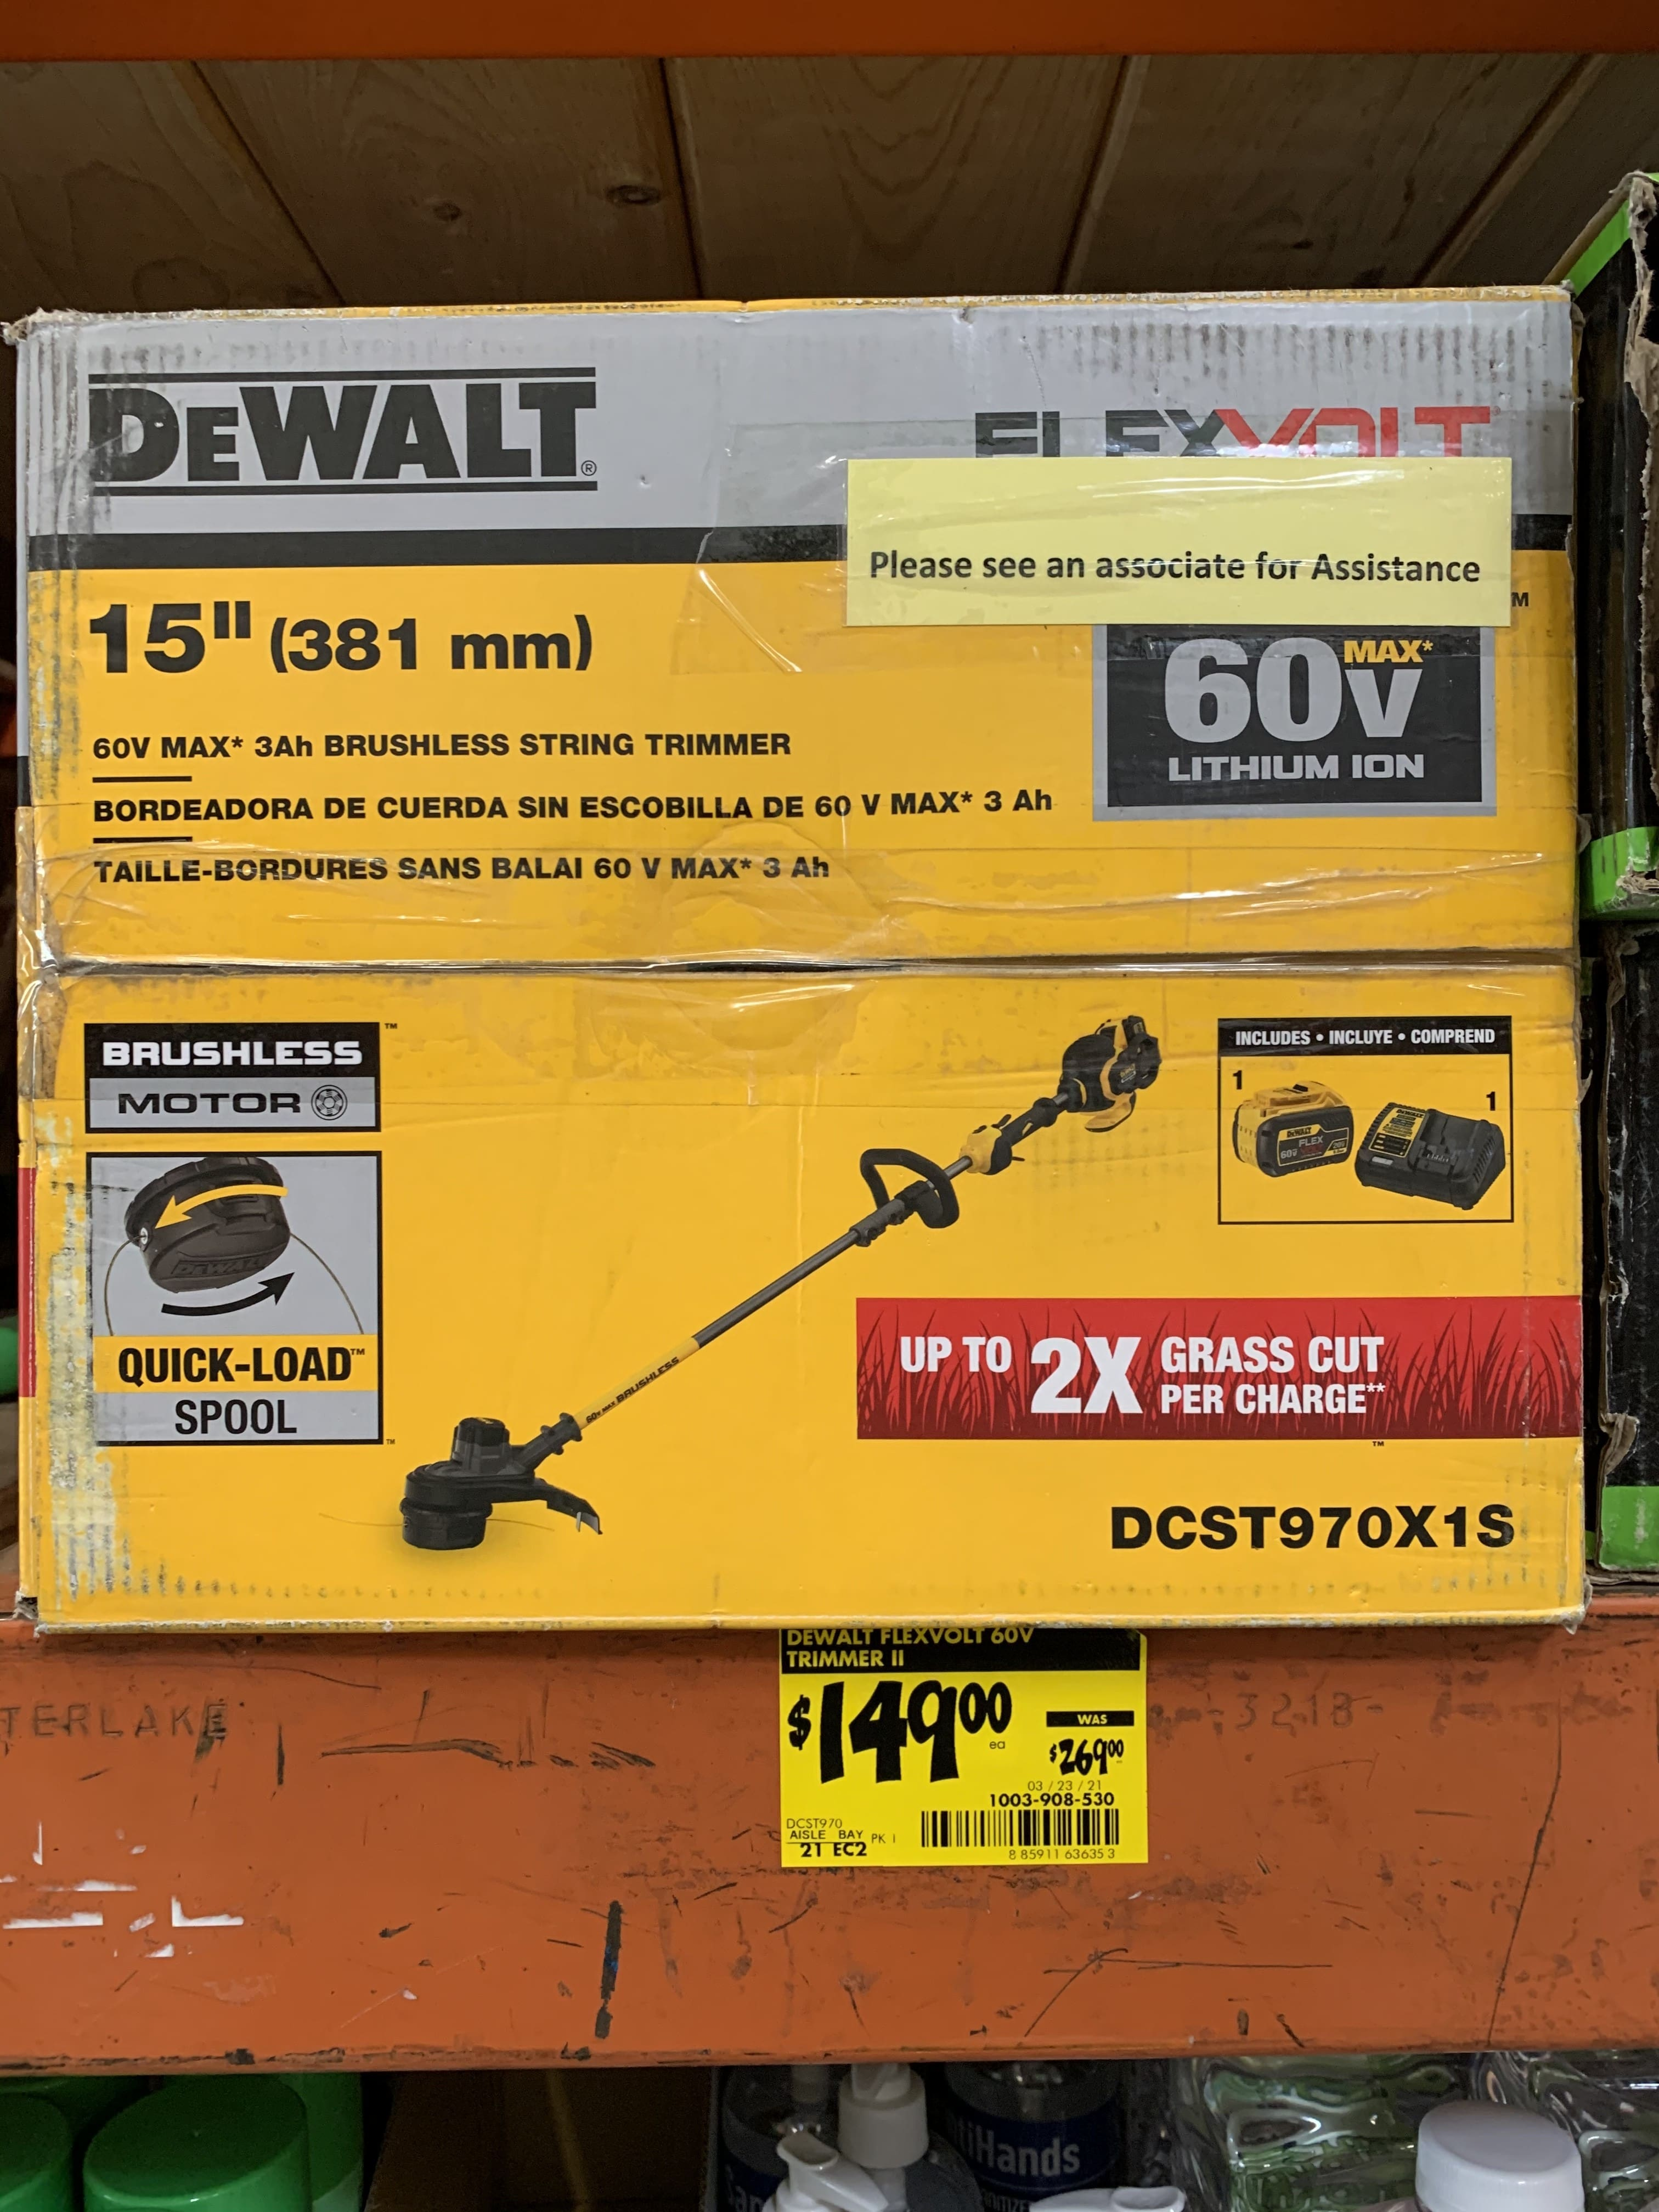 DEWALT 15 in. 60V MAX Lithium-Ion Cordless FLEXVOLT Brushless String Grass Trimmer with (1) 3.0Ah Battery and Charger Included-DCST970X1S - $150